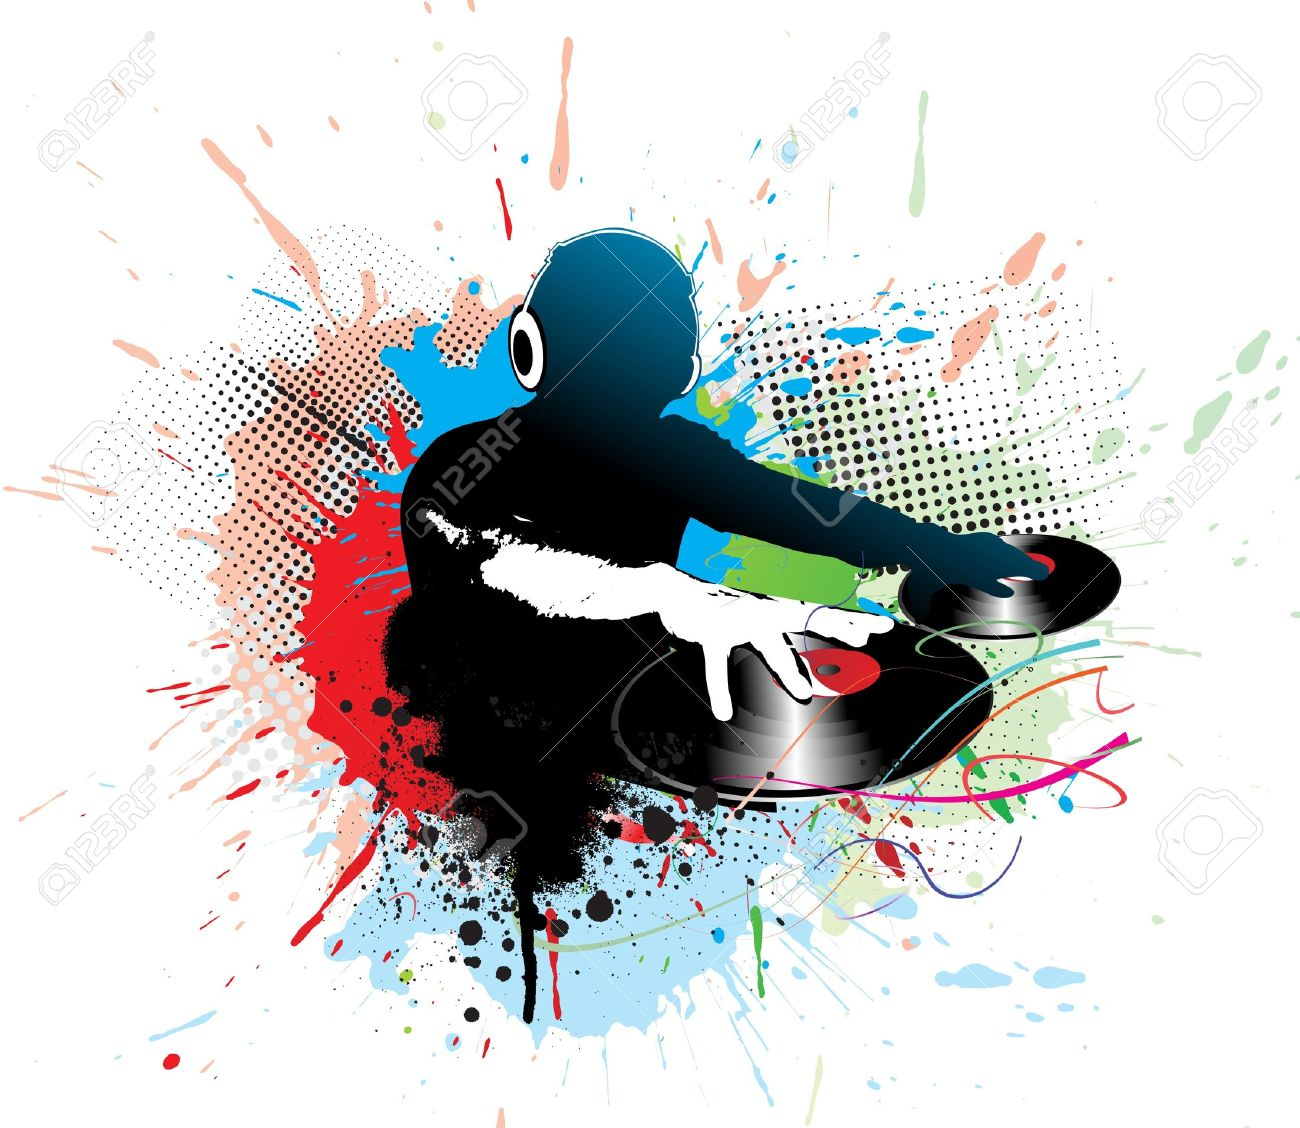 7133406 Abstract Illustration Of An Dj Man Playing Tunes With Music Note Background Stock Vector 1300x1127